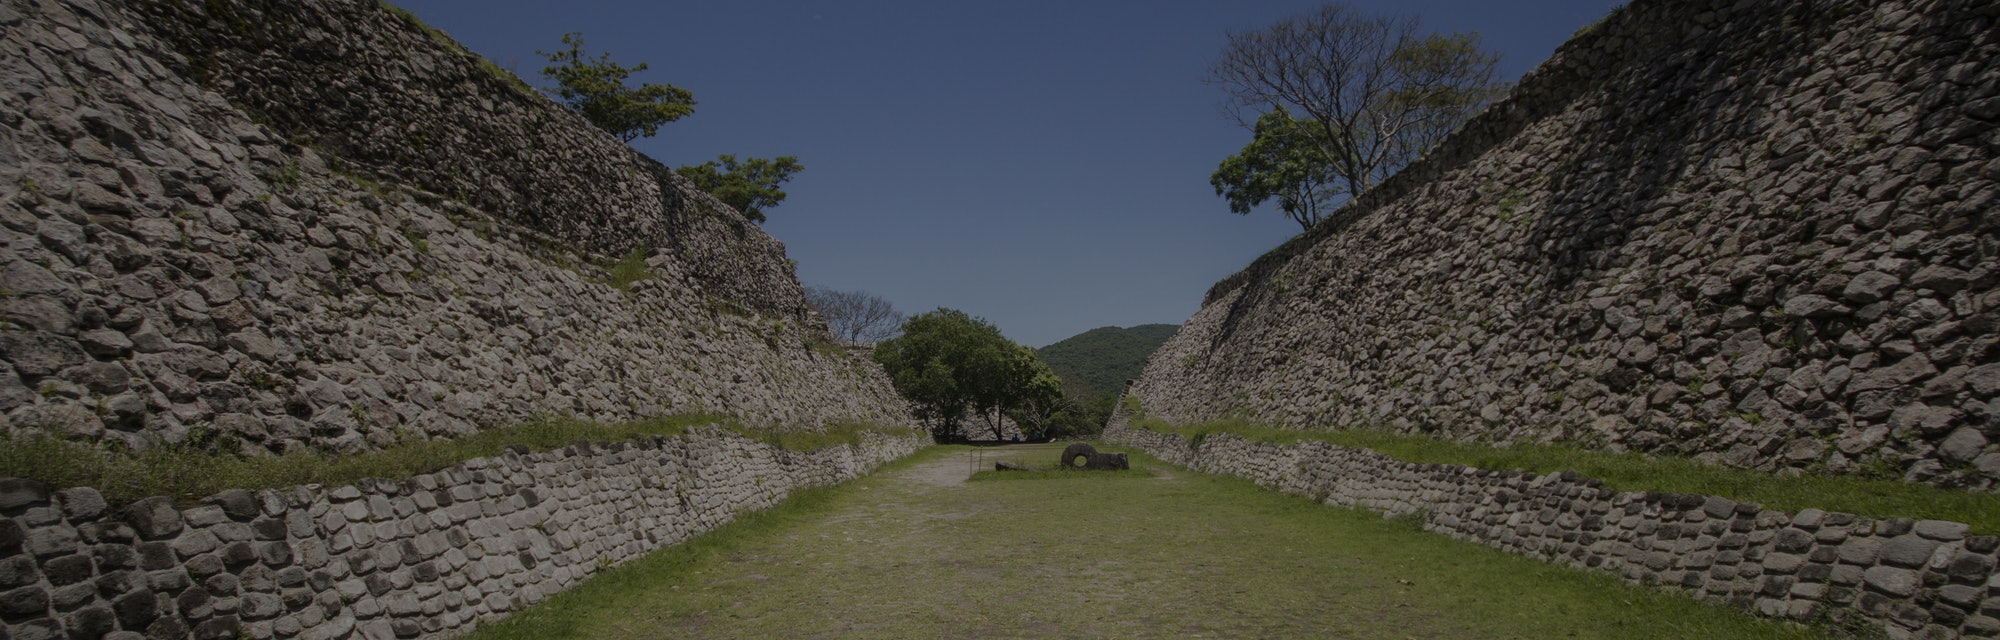 Ball game in the archaeological zone of Xochicalco